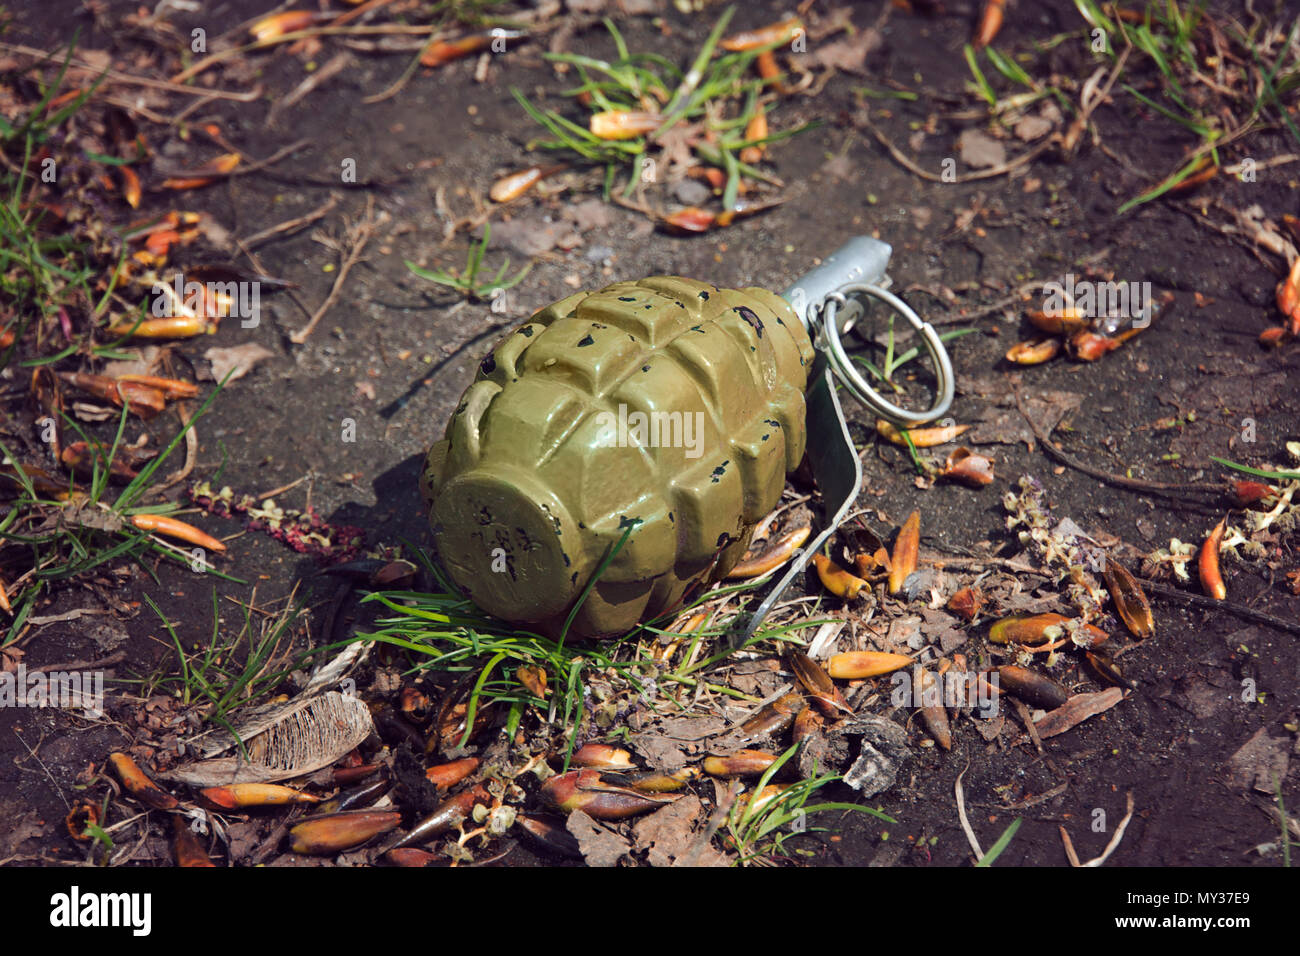 hand grenade grenade lying on the ground. - Stock Image